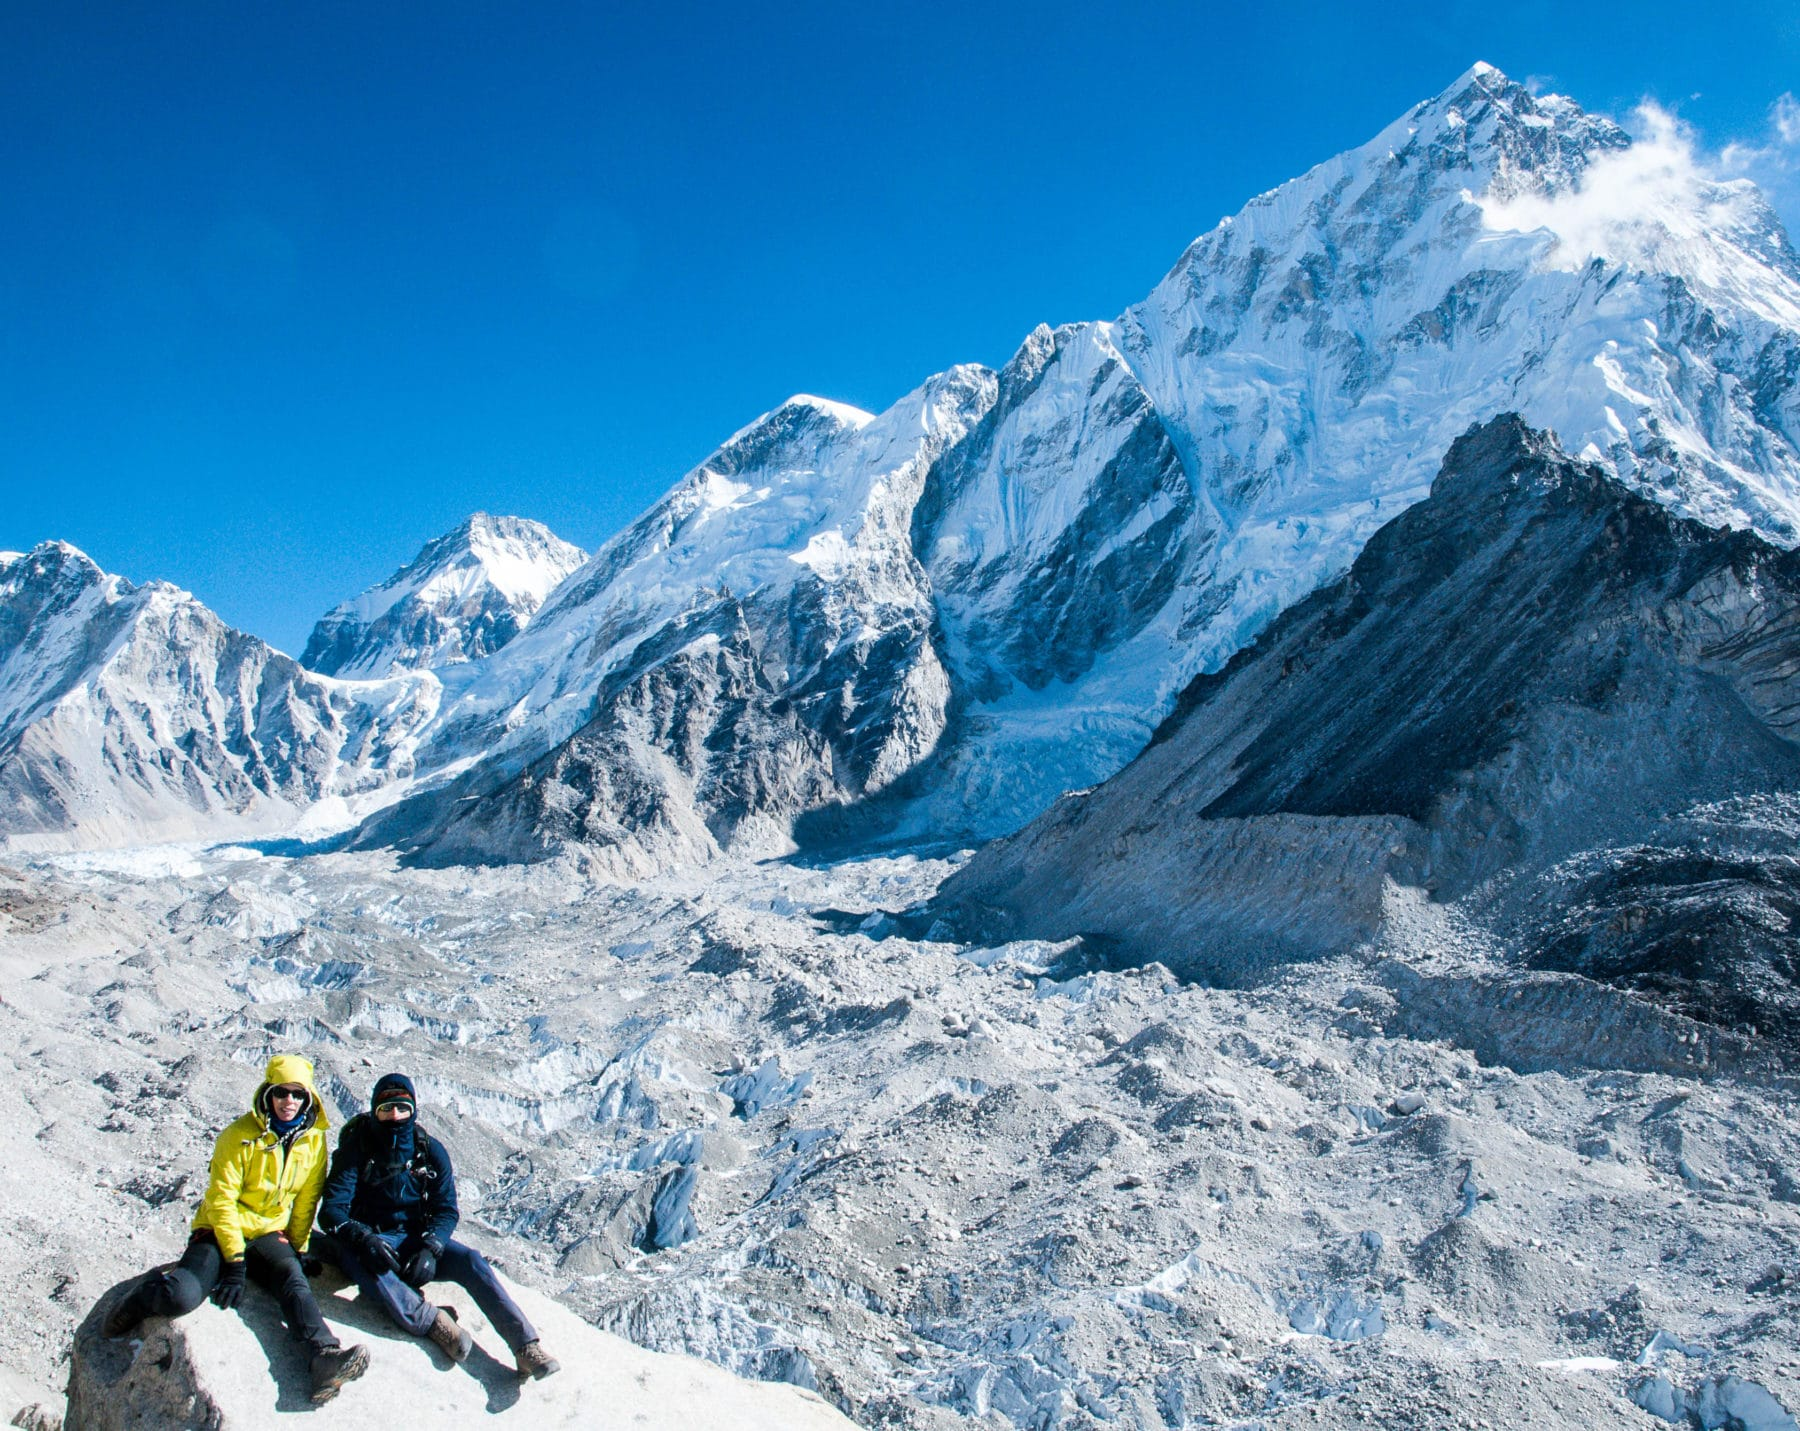 Julie and Shawn in front of the Khumbu Glacier